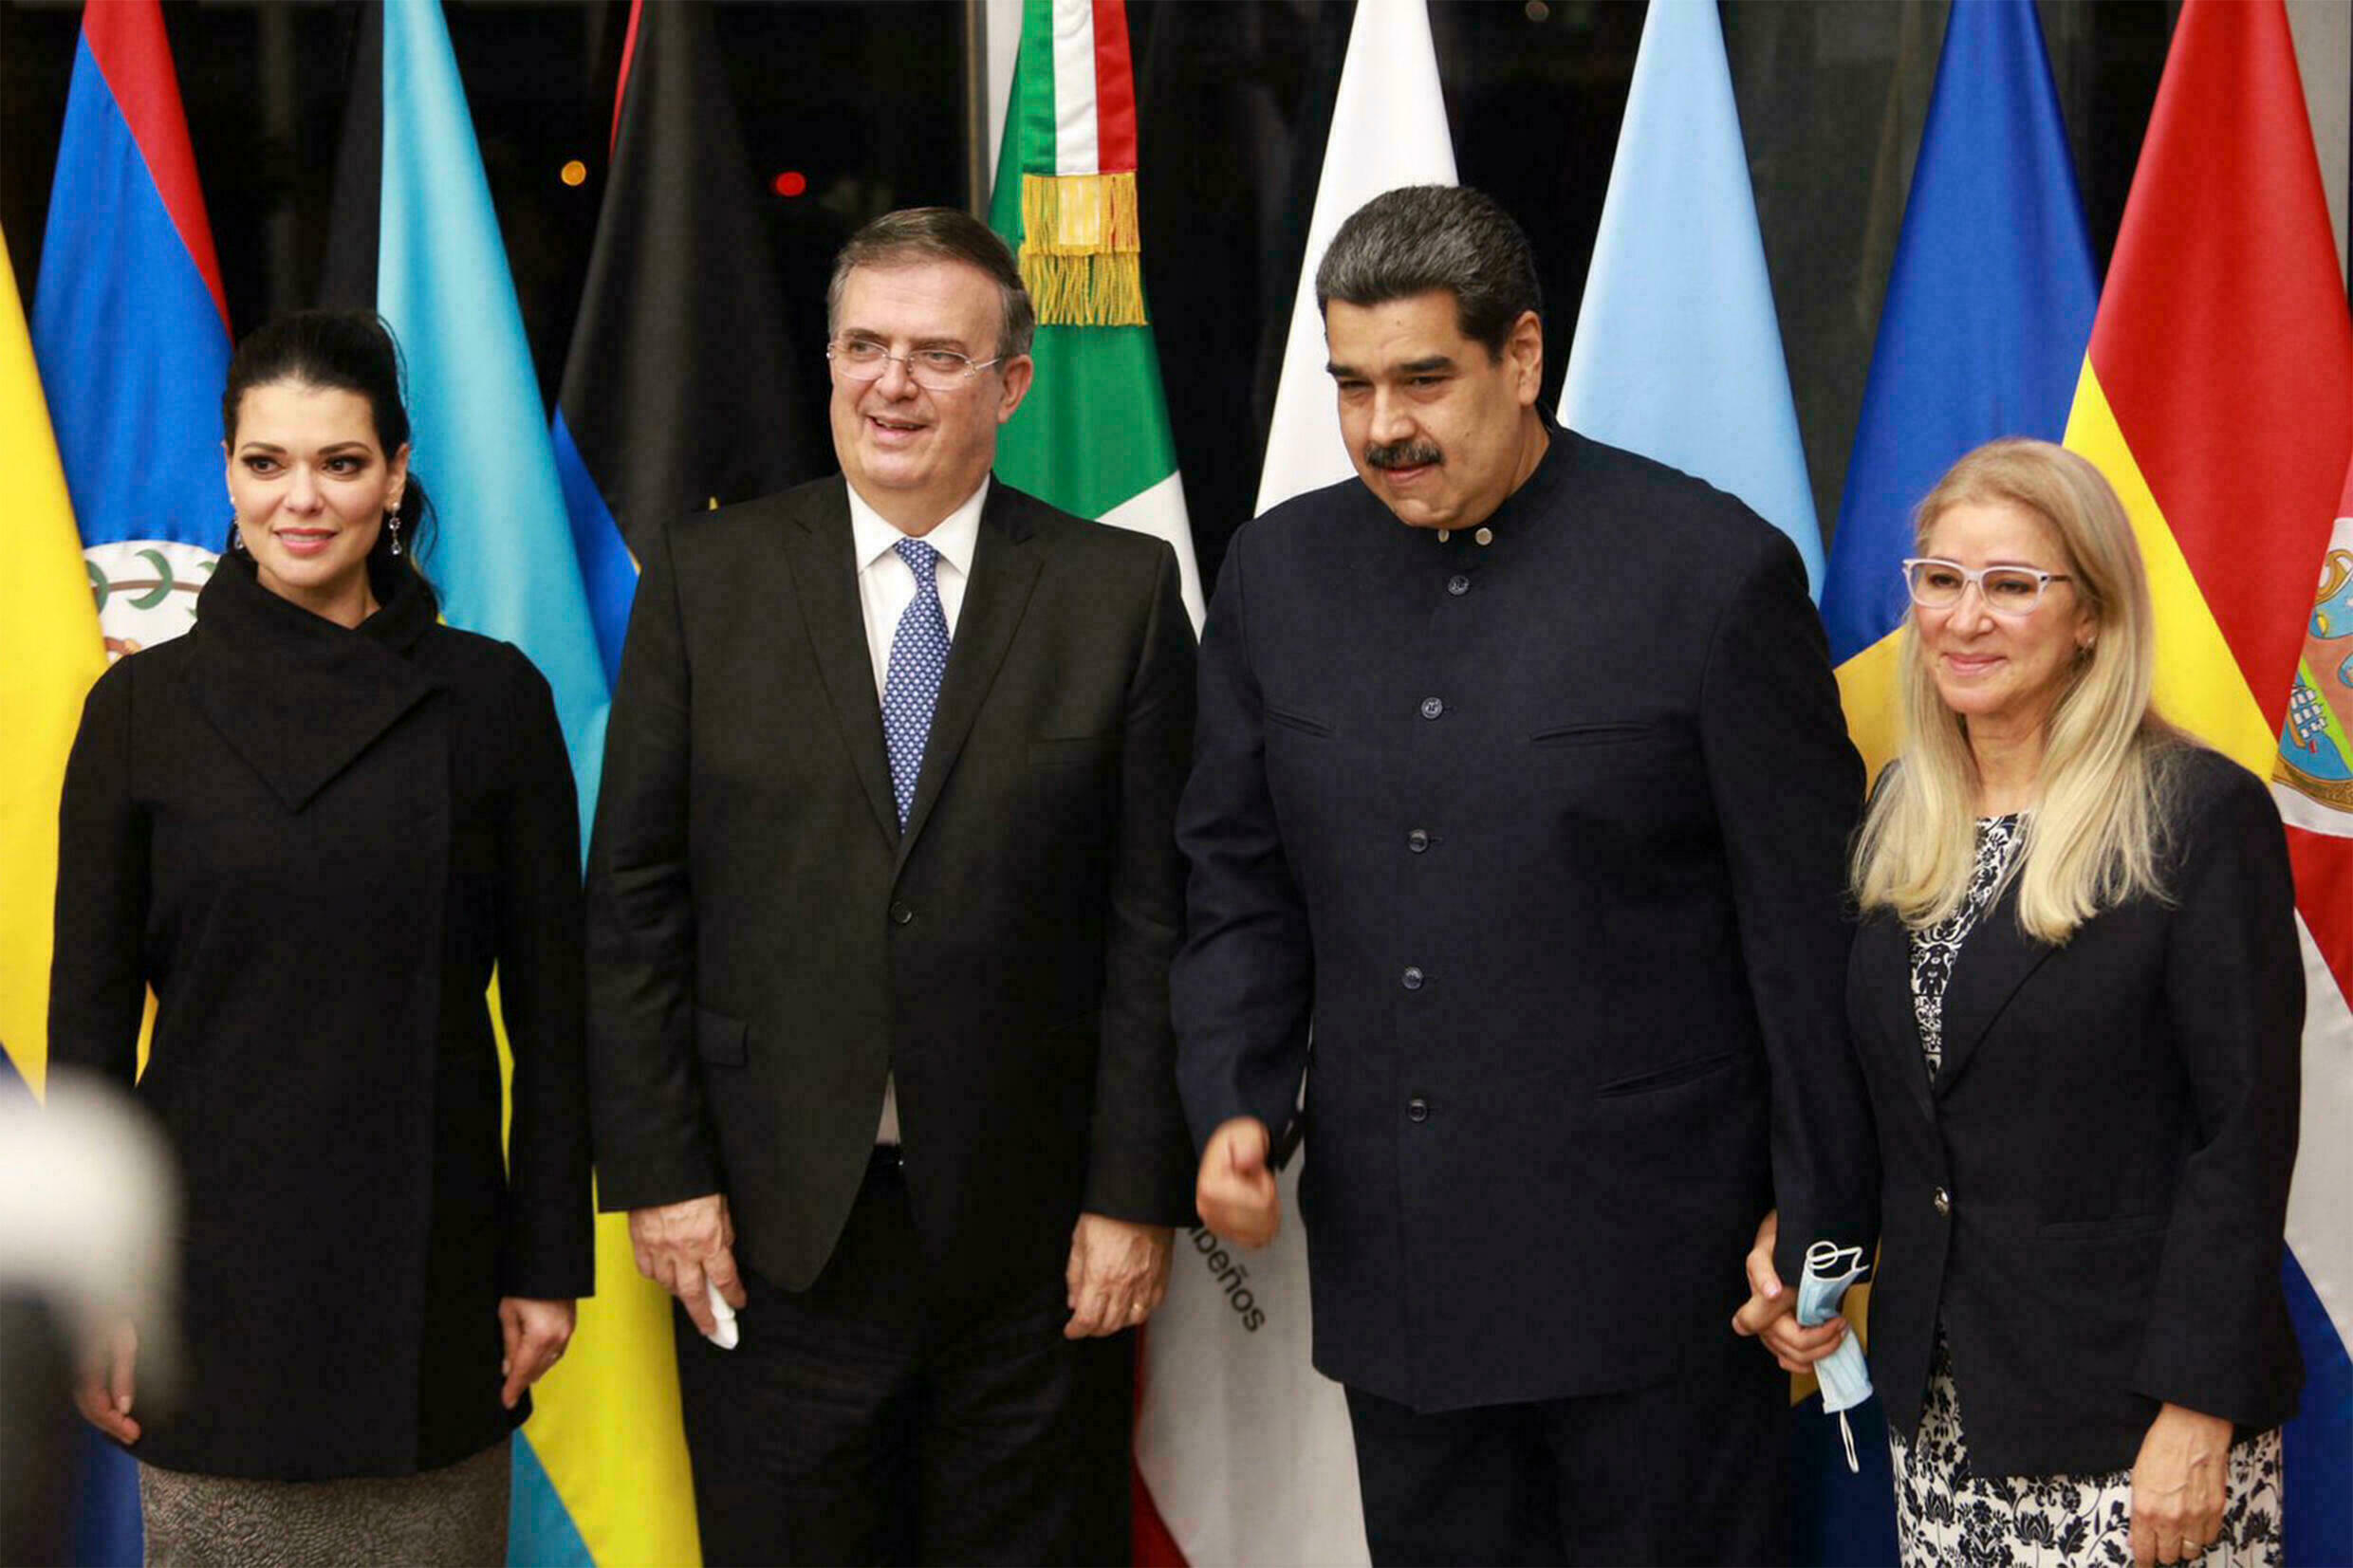 Maduro in Mexico on first foreign trip since US accusations